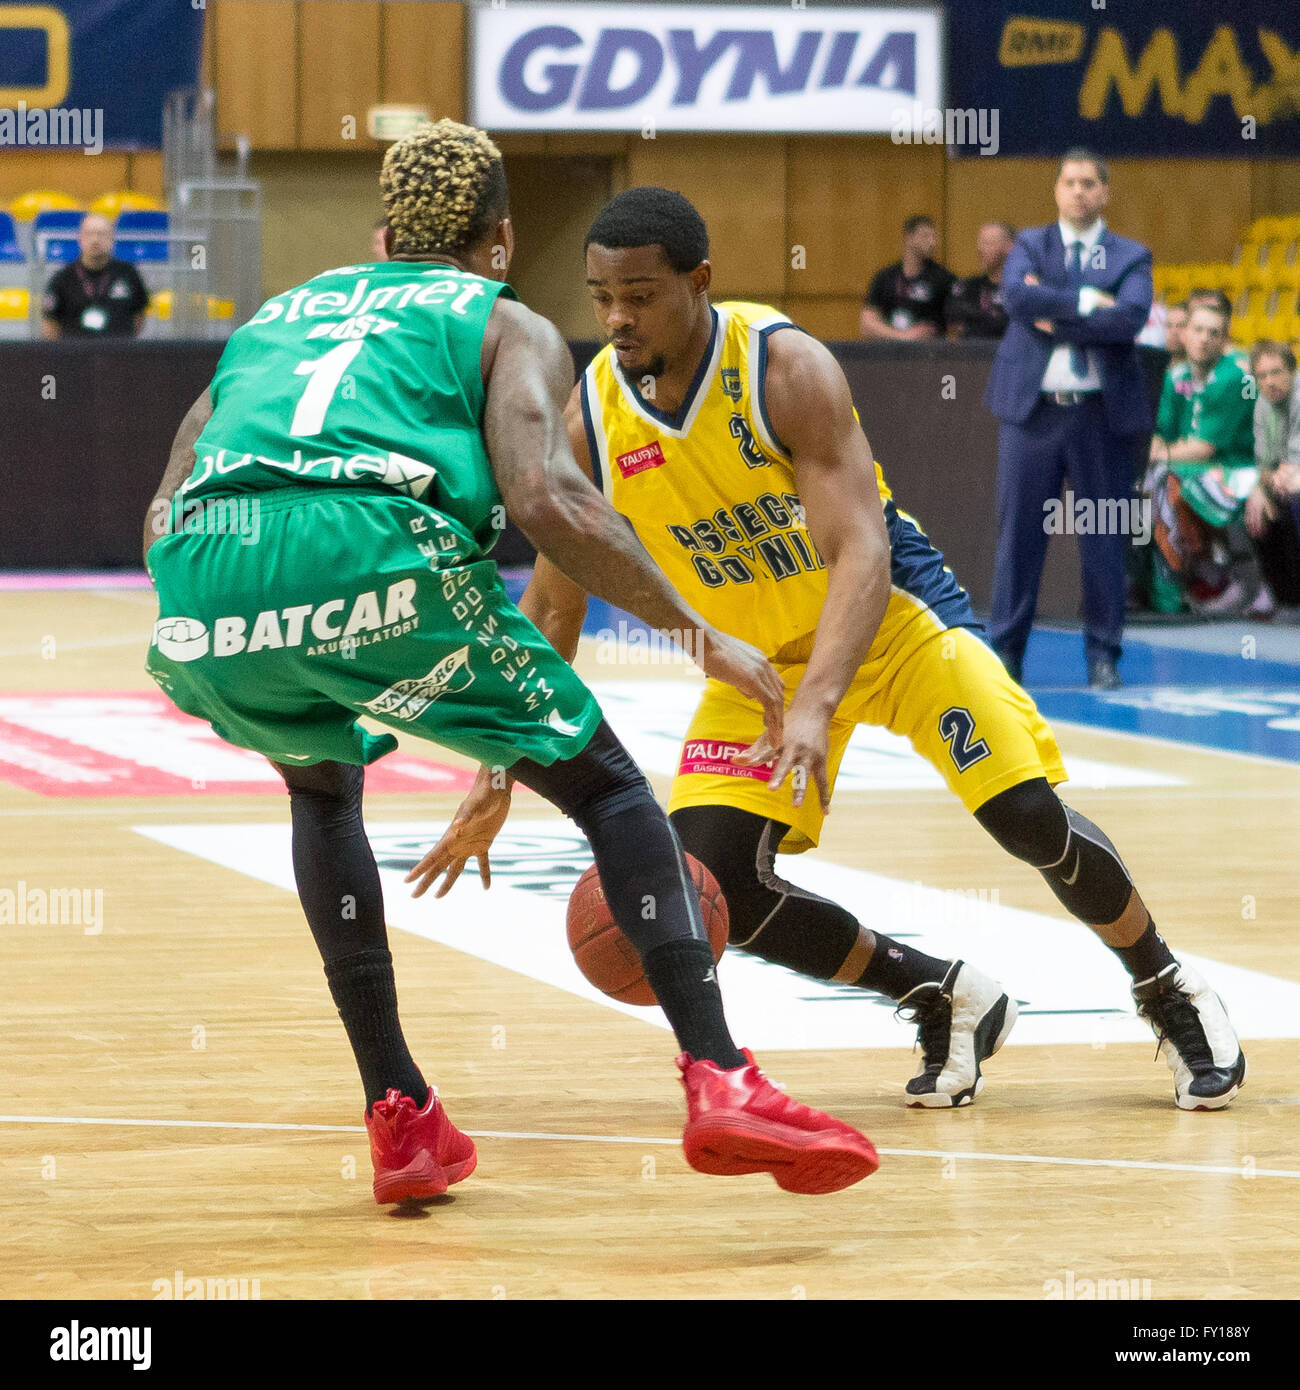 Gdynia Arena, Gdynia, Poland, 19th April, 2016. Basketball Tauron League,  Dee Bost, Anthony Hickey in action during - Stock Image